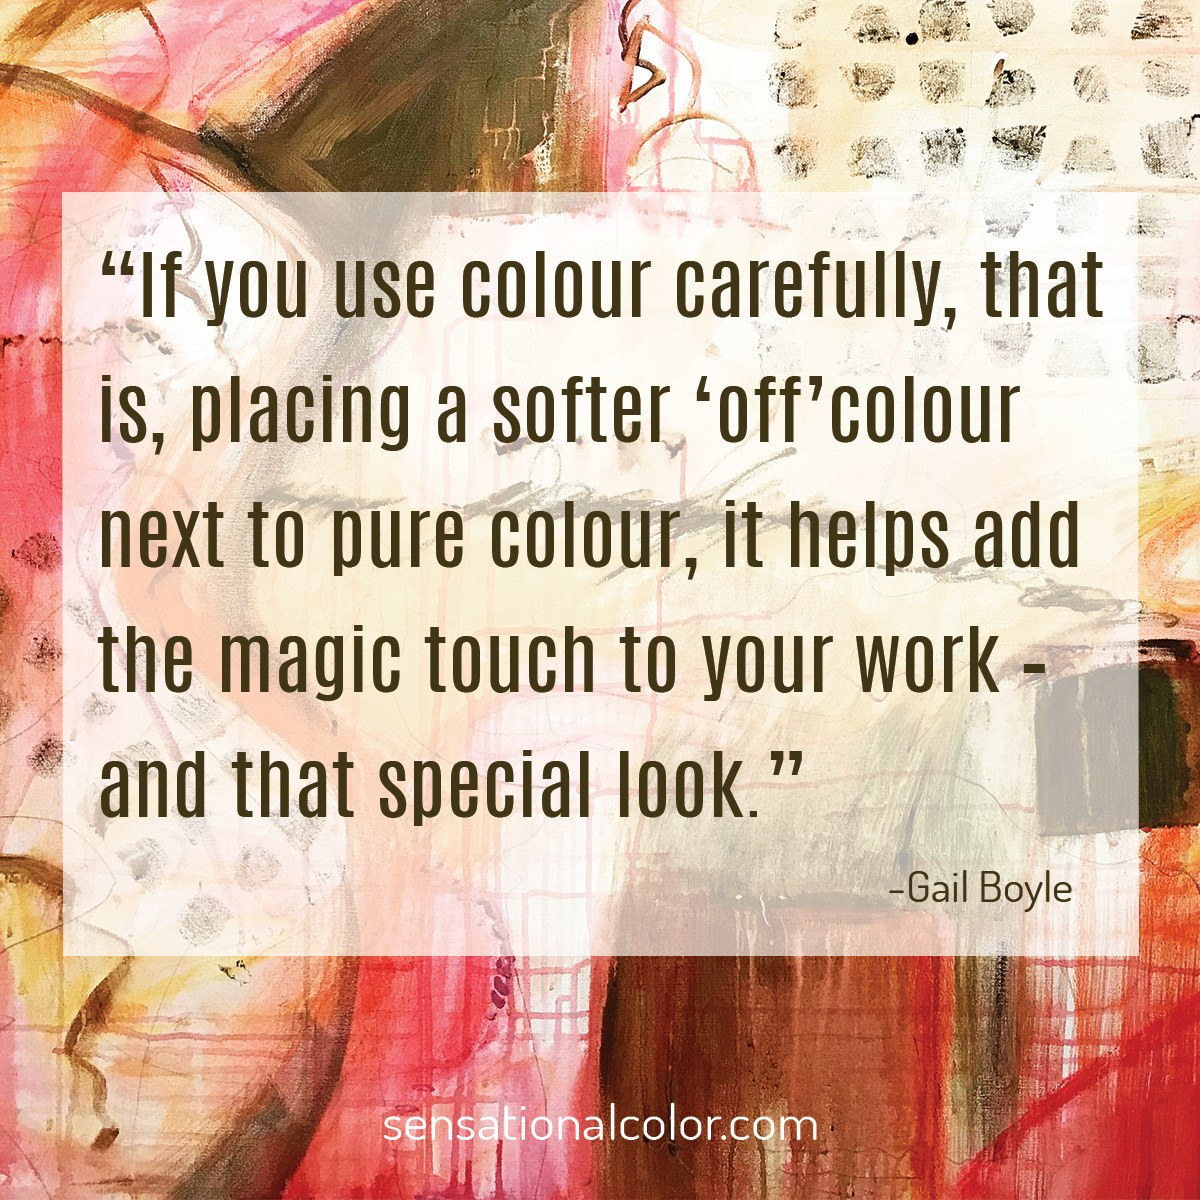 """If you use colour carefully, that is, placing a softer 'off' colour next to pure colour, it helps add the magic touch to your work – and that special look."" - Gail Boyle"